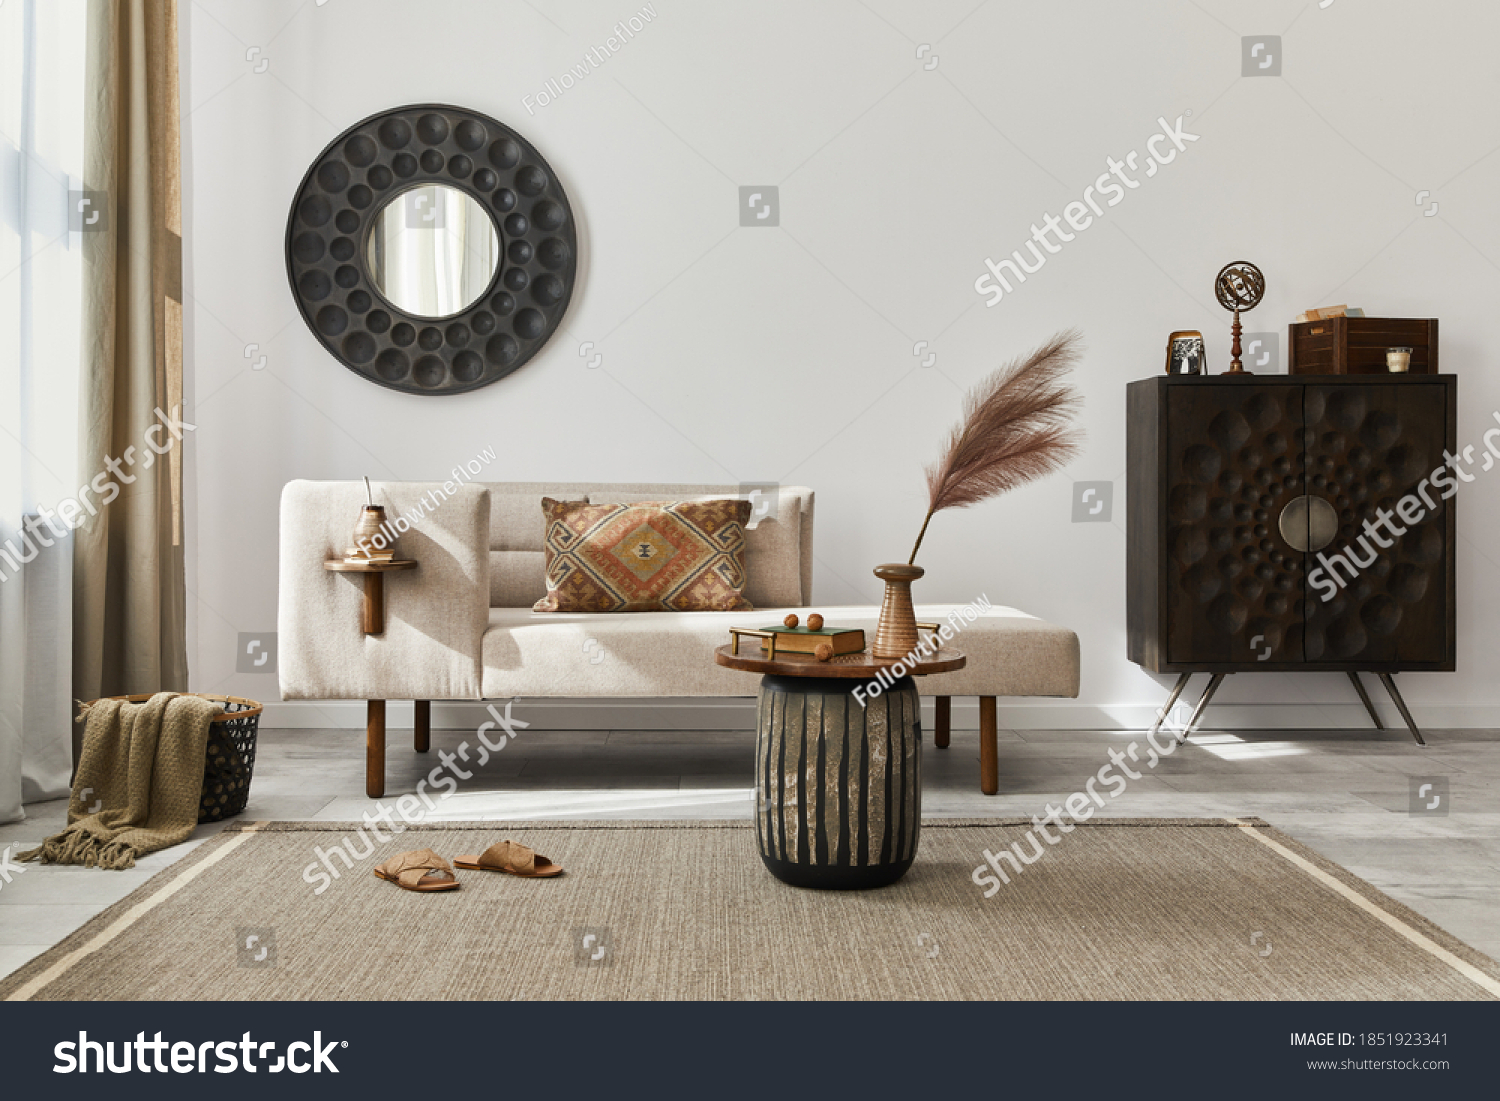 Interior design of ethnic living room with modern commode, round mirror, decoration, furniture and personal accessories. Template. White wall. #1851923341